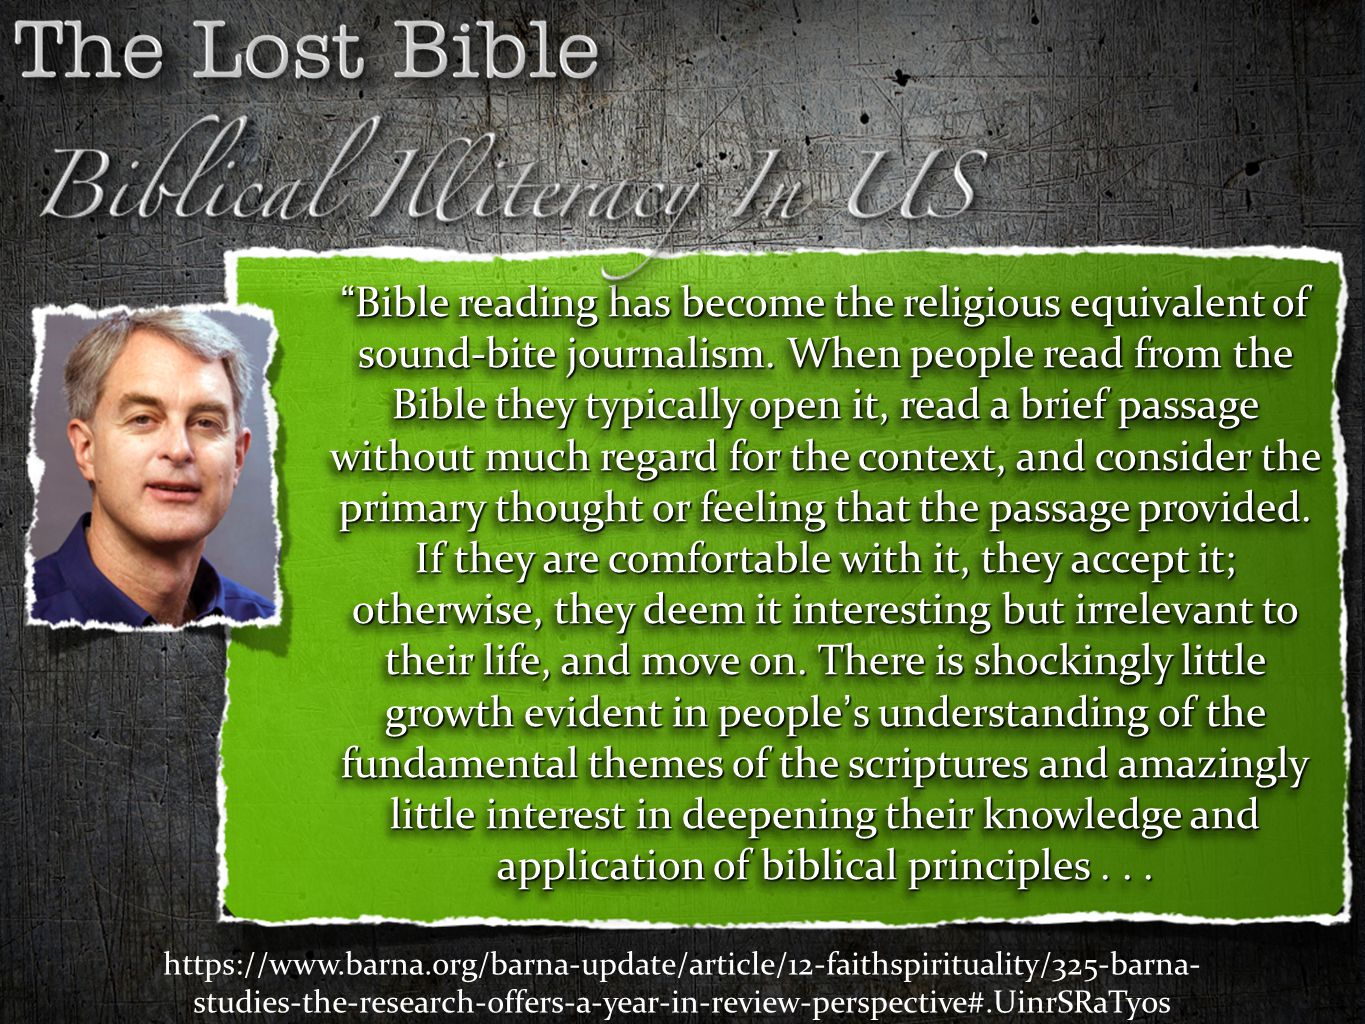 Bible reading has become the religious equivalent of sound-bite journalism. When people read from the Bible they typically open it, read a brief passage without much regard for the context, and consider the primary thought or feeling that the passage provided. If they are comfortable with it, they accept it; otherwise, they deem it interesting but irrelevant to their life, and move on. There is shockingly little growth evident in people's understanding of the fundamental themes of the scriptures and amazingly little interest in deepening their knowledge and application of biblical principles . . .